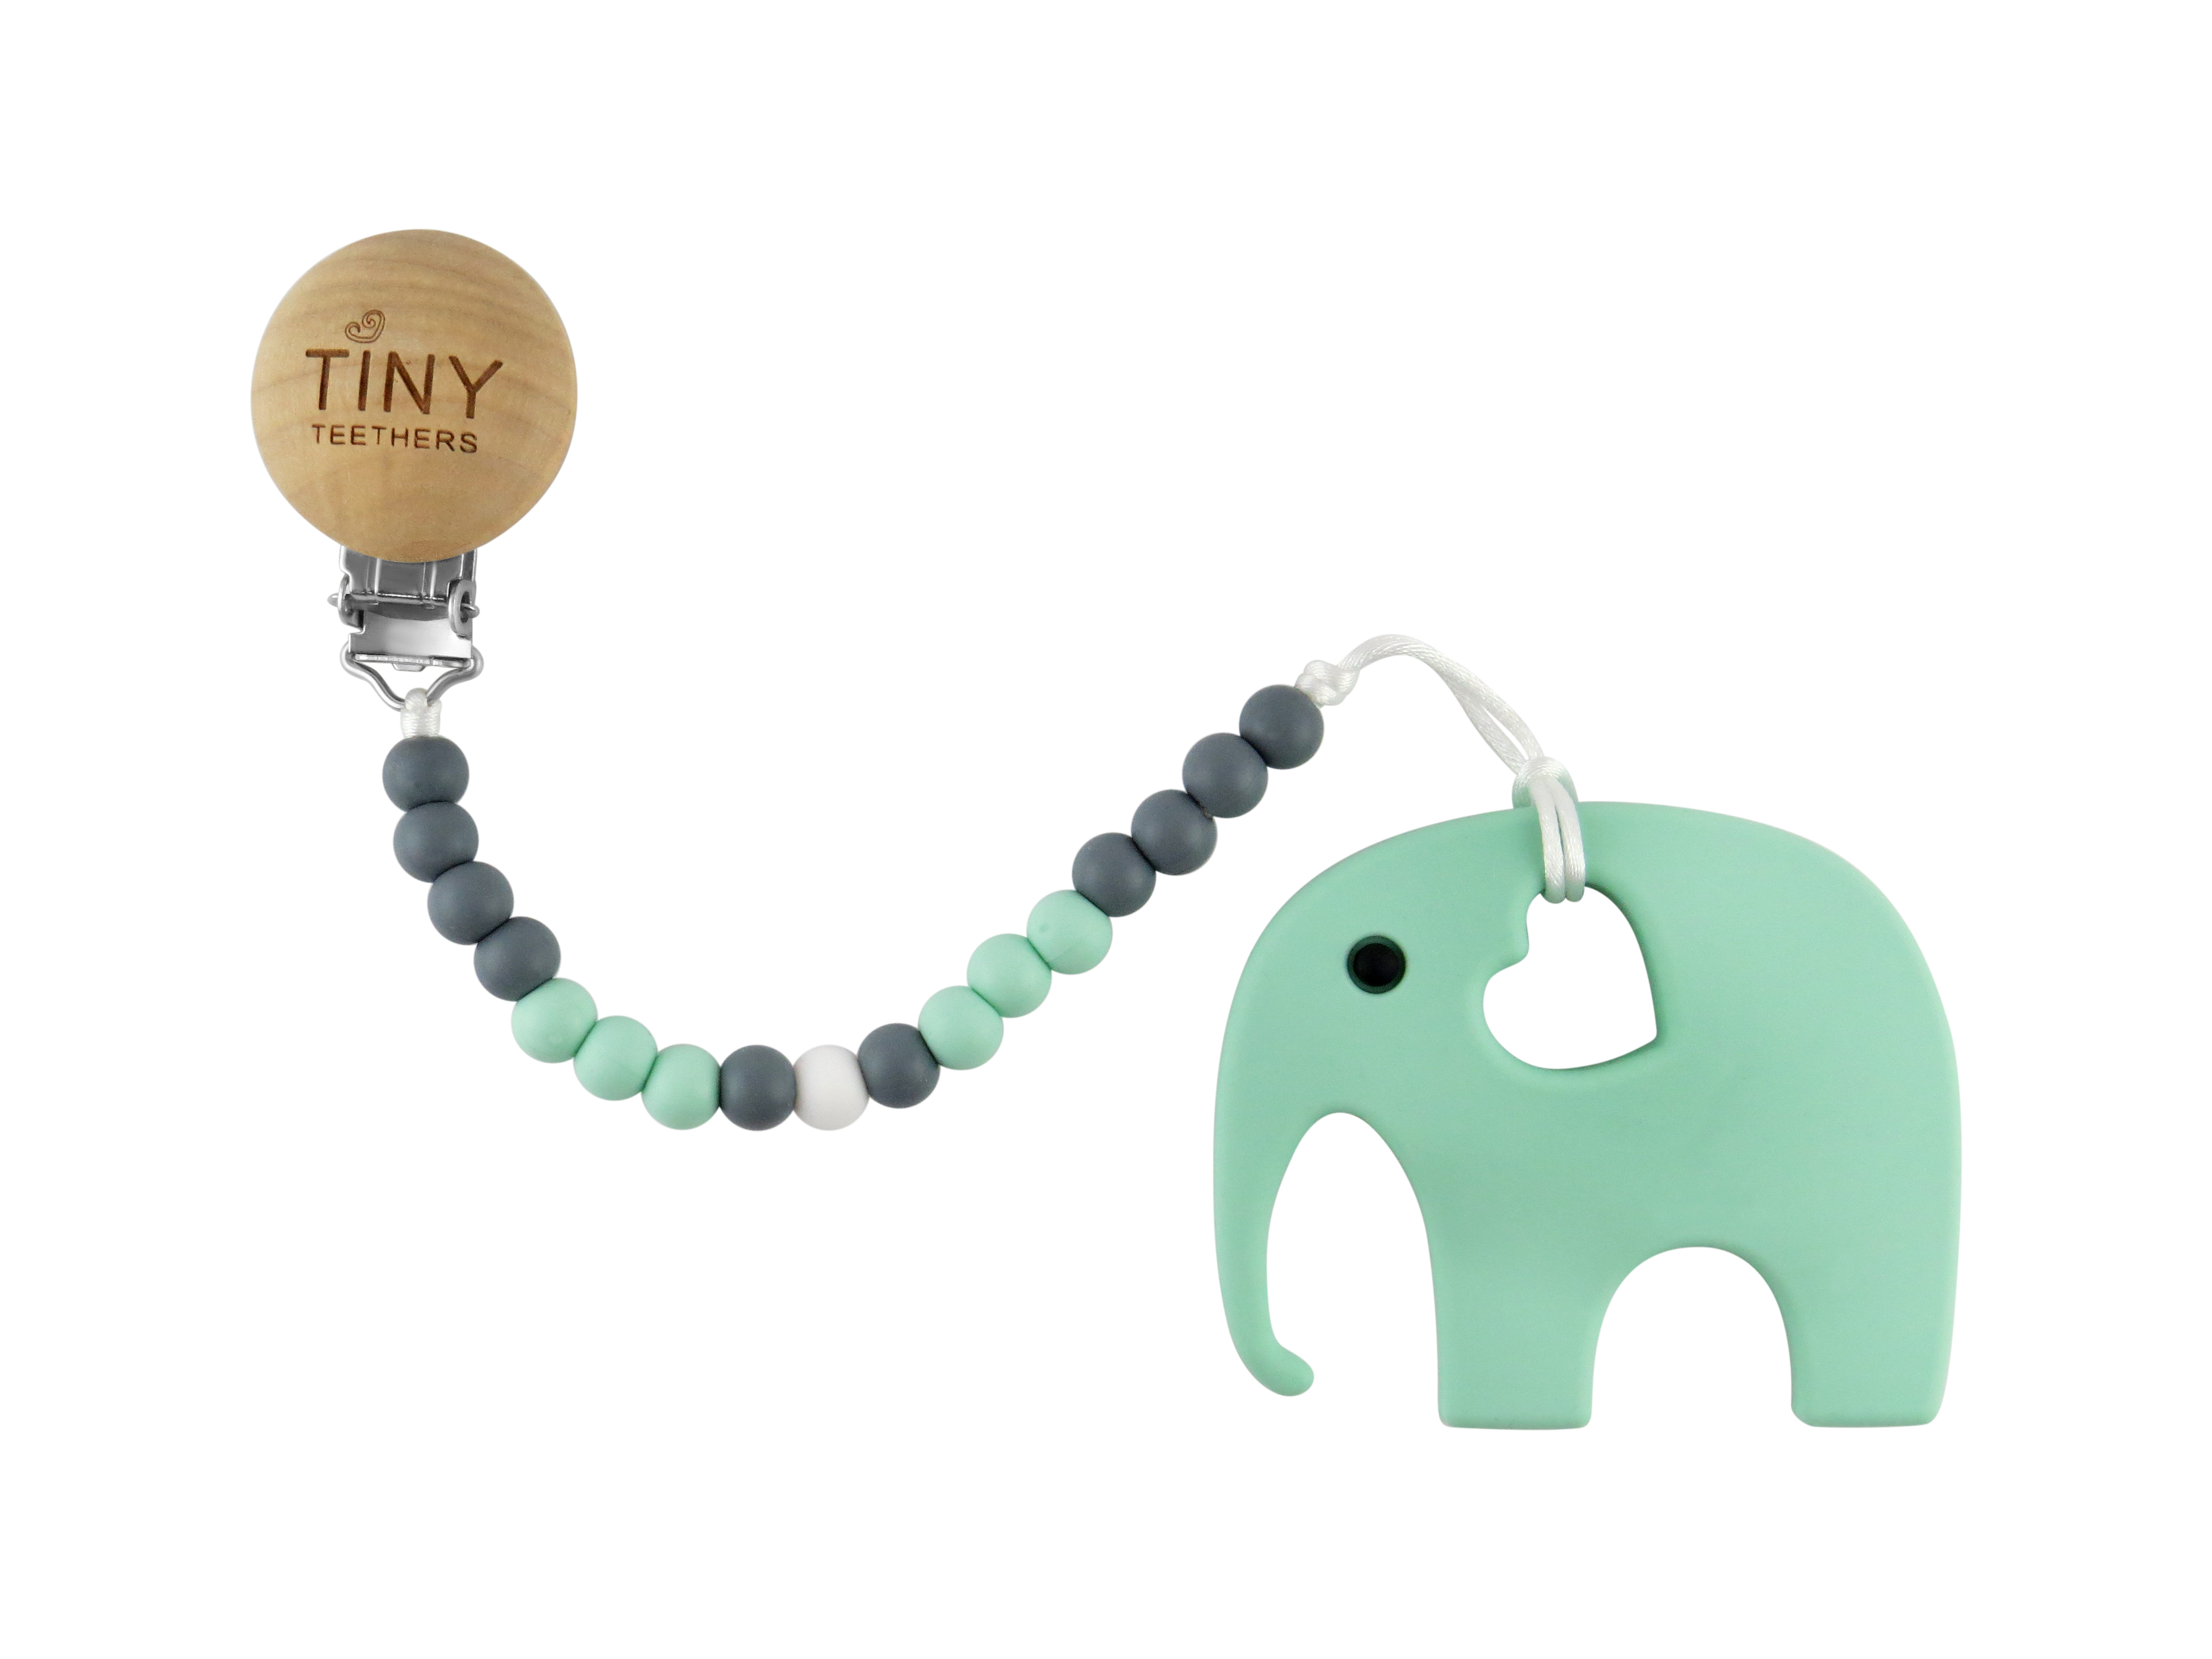 TINY TEETHERS TCC003 TEETHER ELEPHANT + CLIP COLLECTION